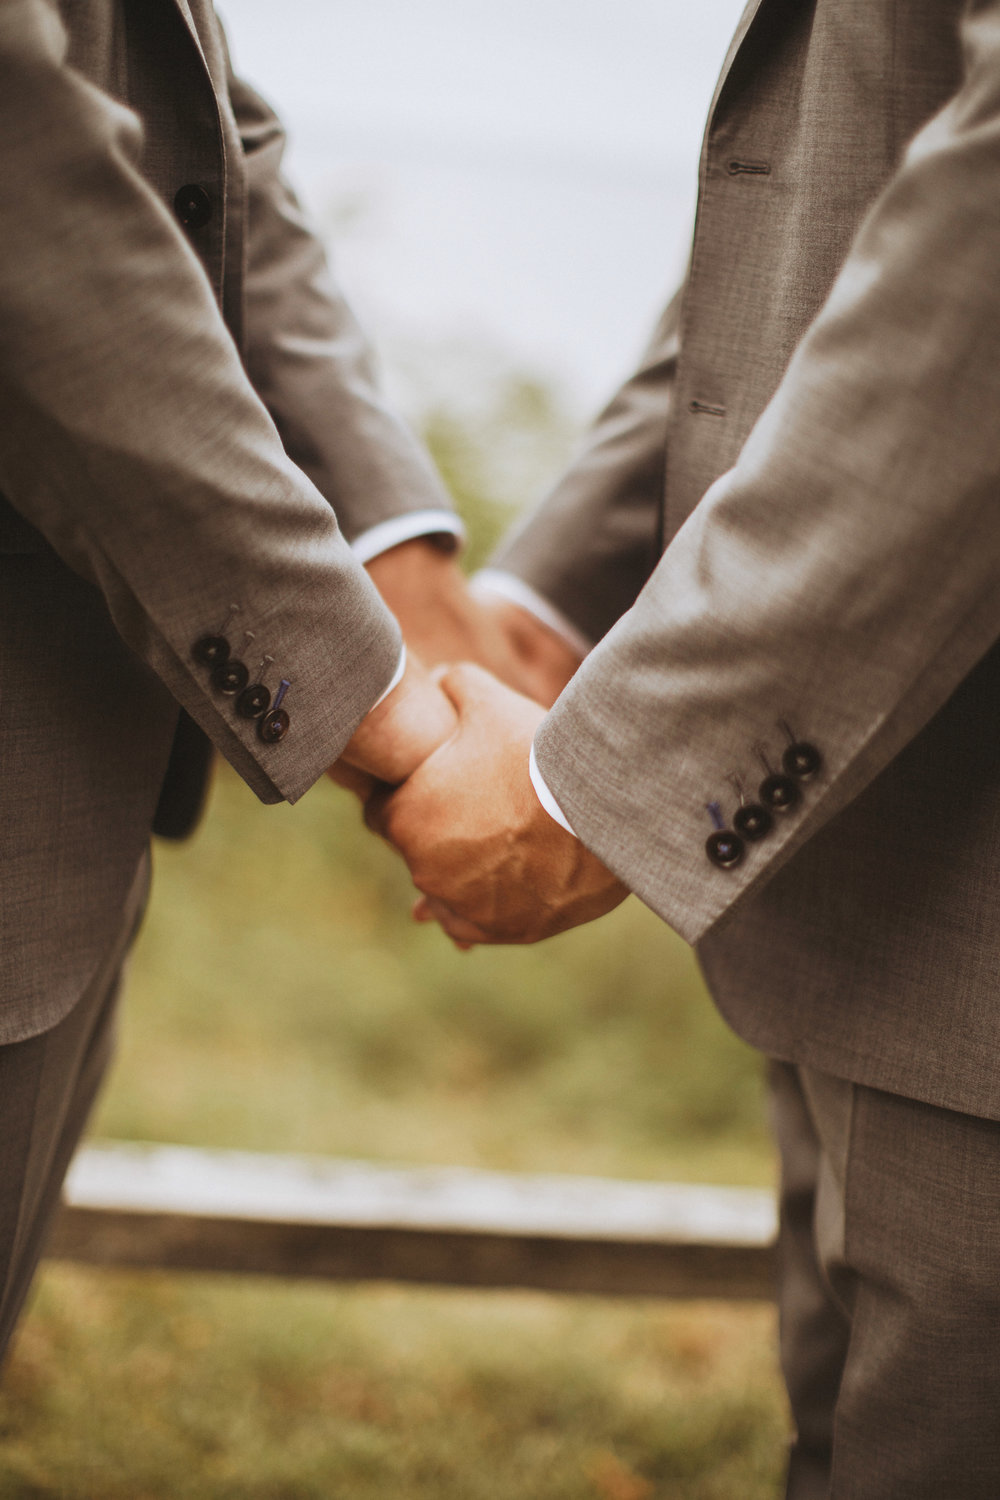 Grooms holding hands during wedding ceremony